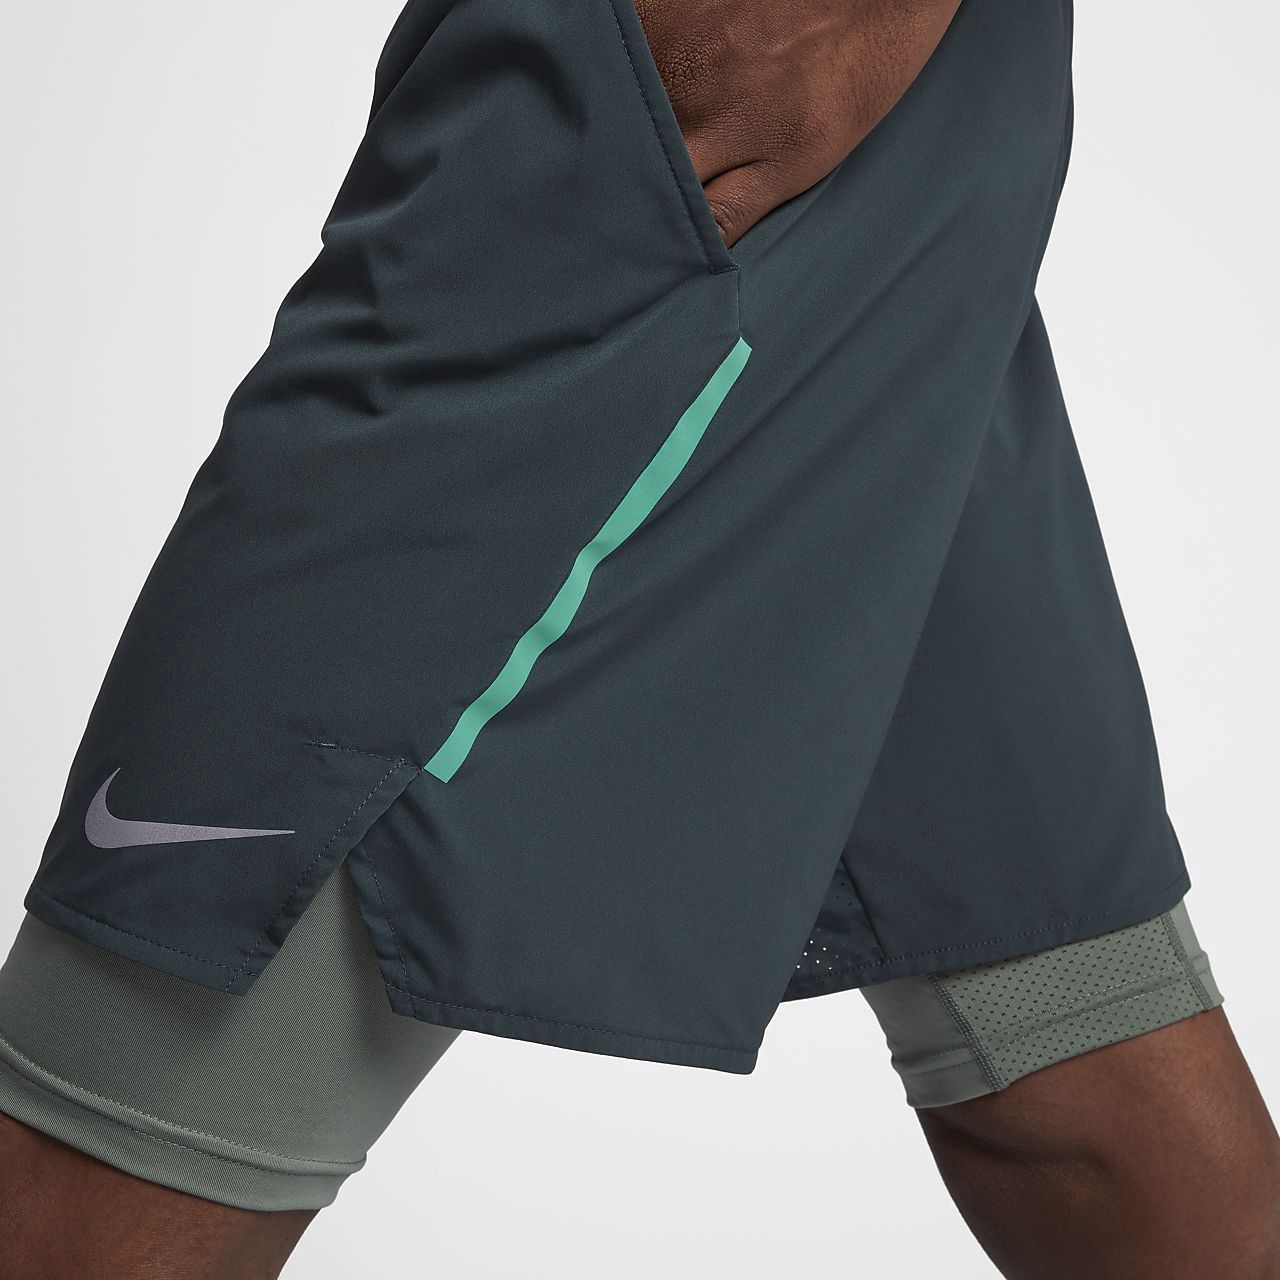 Nike Flex Stride Men s 2-In-1 Running Shorts - XL  7555b3c43ffee